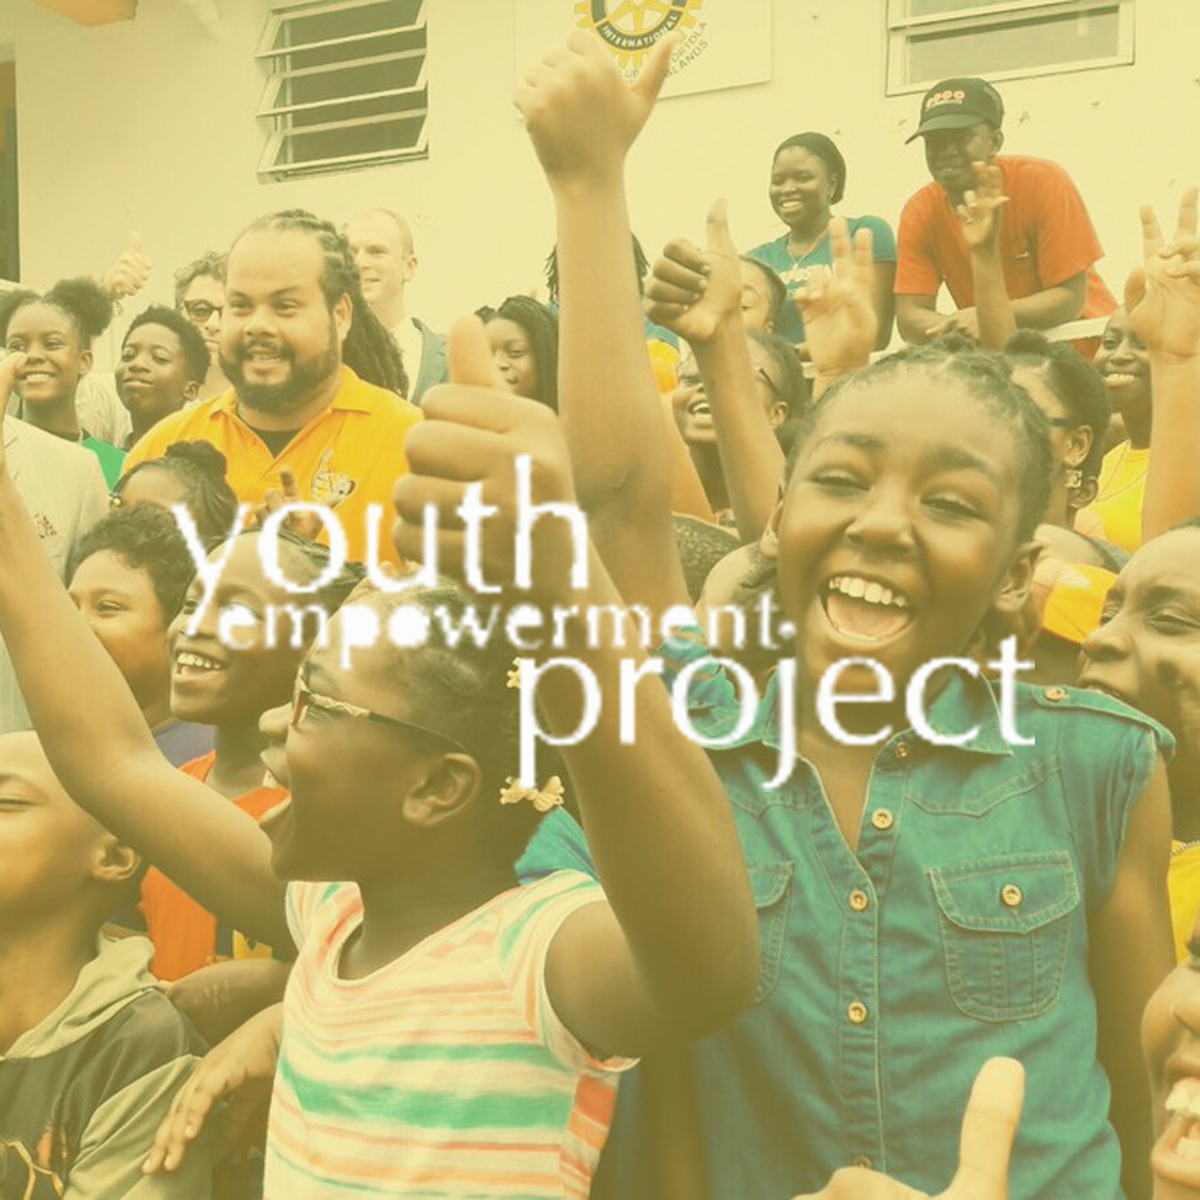 Youth Empowerment Project runs youth involvement/empowerment programs and activites for kids in the BVI. Their main focuses include: character development, community service, team building techniques, mentoring and positive experiences.